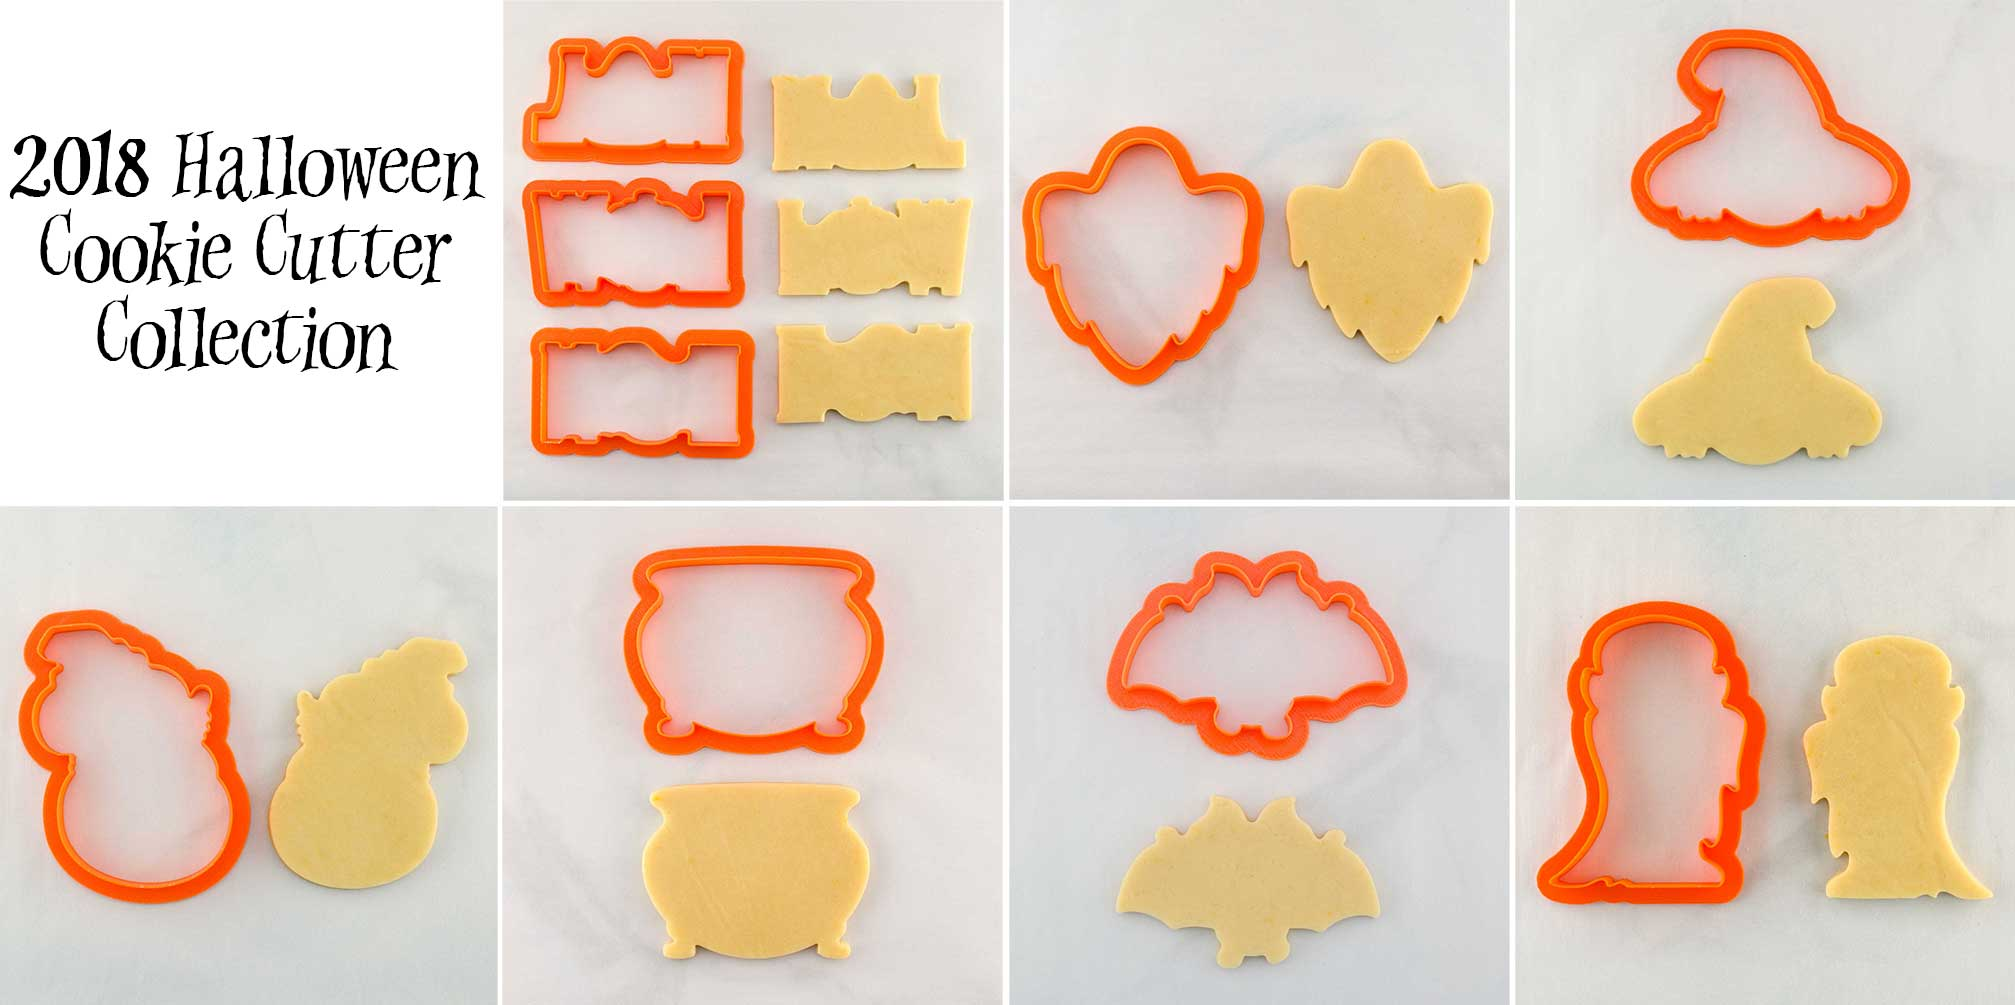 2018 Halloween cookie cutter collection